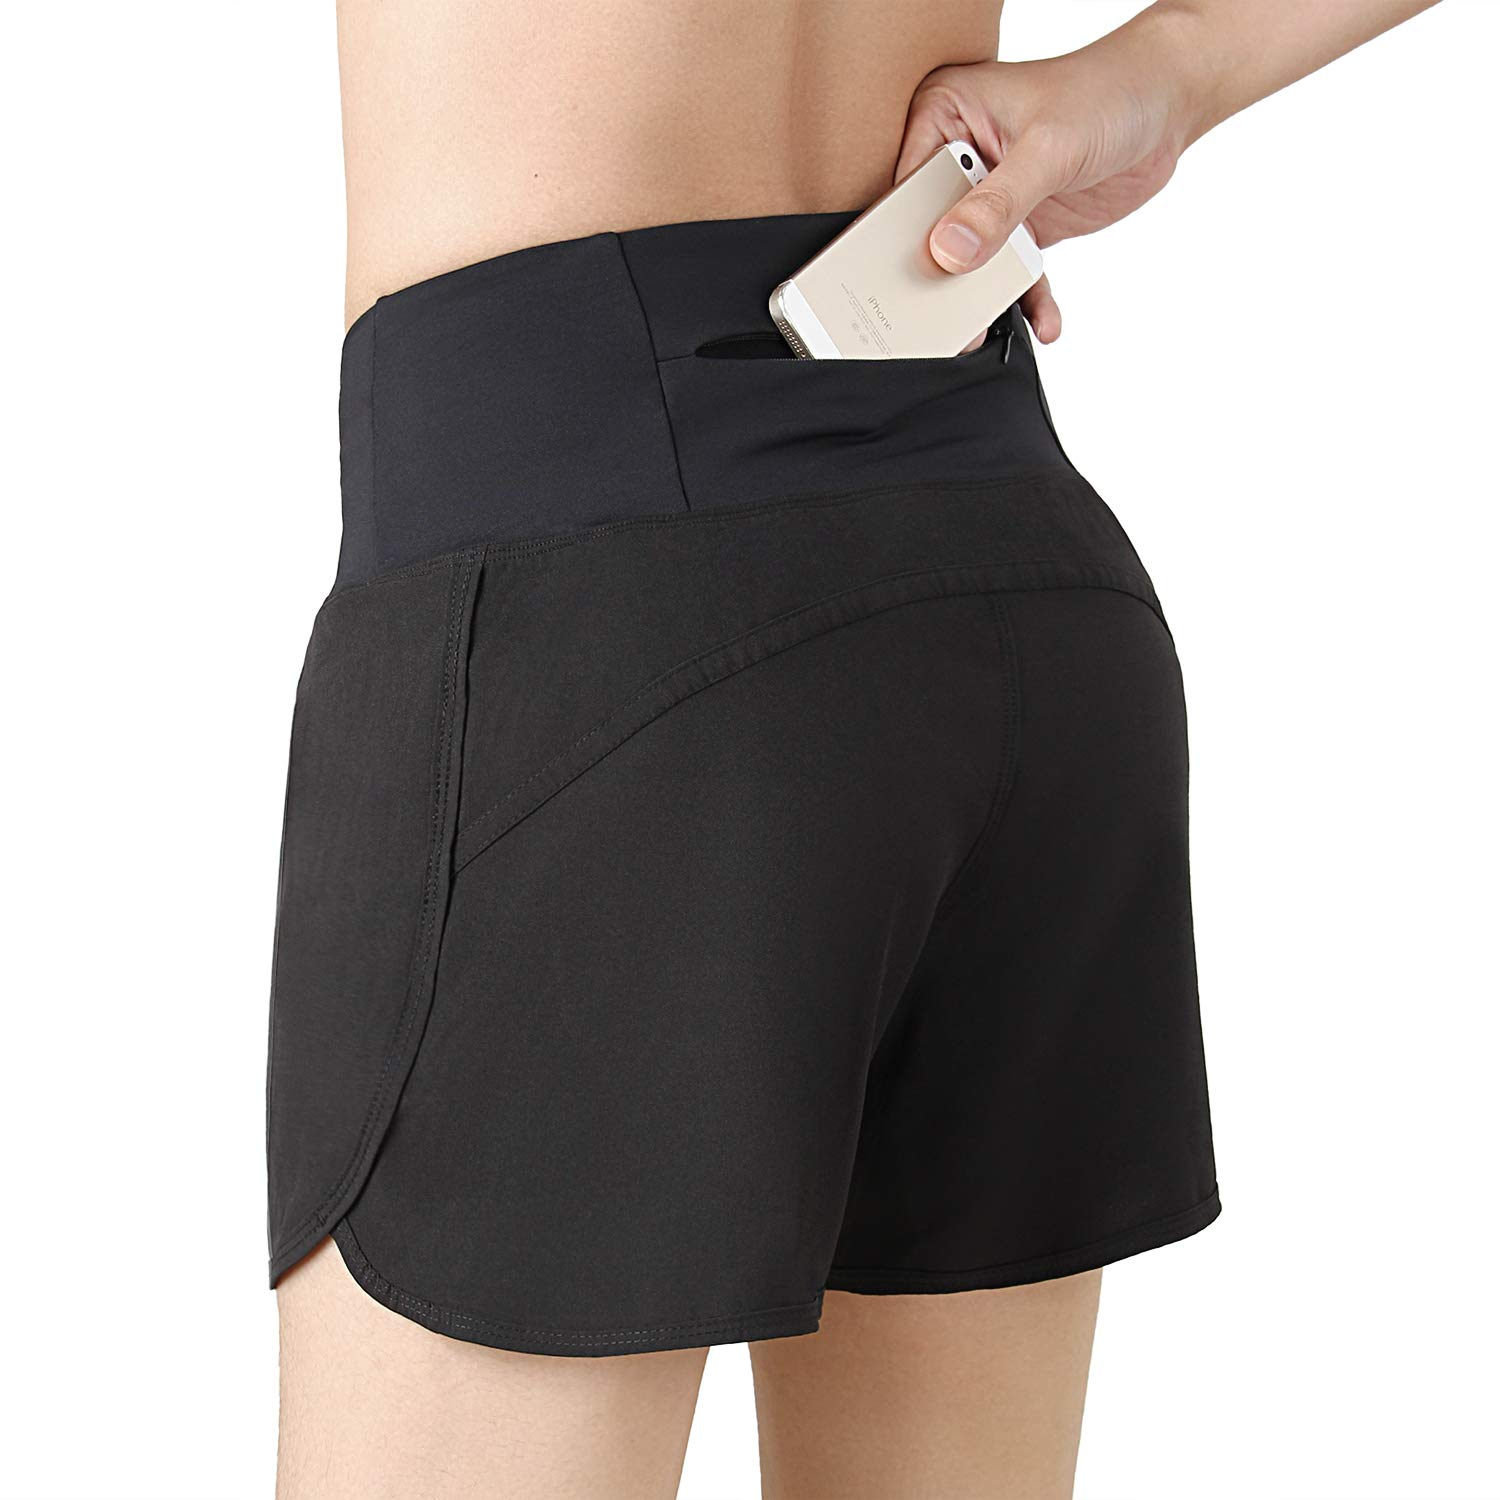 INIBUD Running Shorts for Women with Brief High Waist with Pocket Workout Athletic Yoga 4 Inches (Black, S) by INIBUD